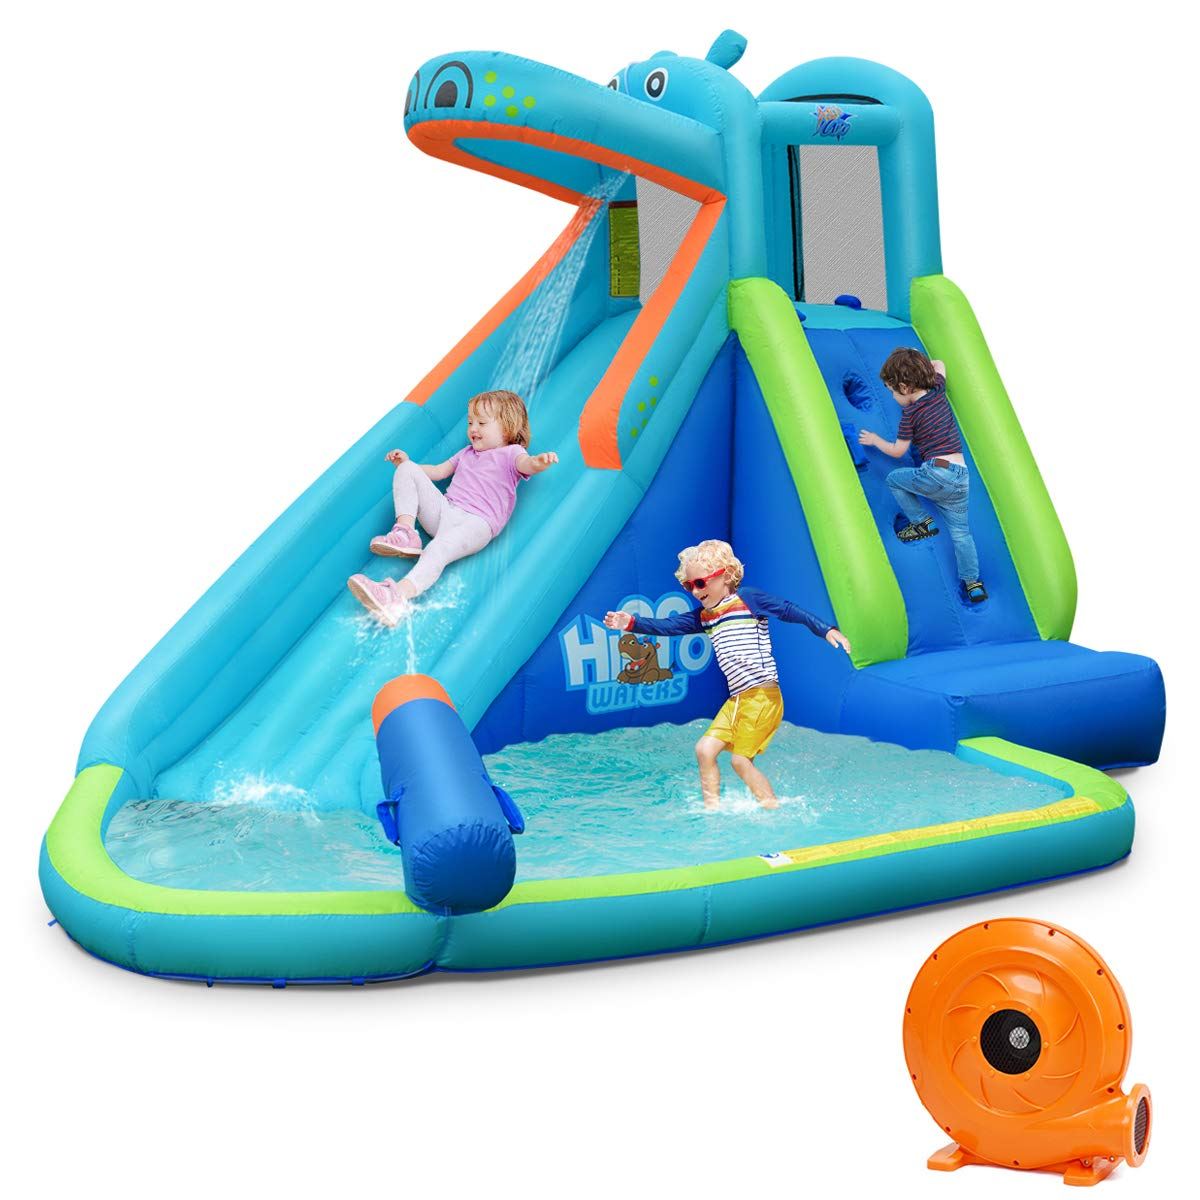 BOUNTECH Inflatable Water Slide, Hippo Themed Bounce House, Bouncer Park w/ Splashing Slide, Climbing Wall, Water Cannon, Including Carry Bag, Stakes, Repair Kit, Hose (with 740W Air Blower)